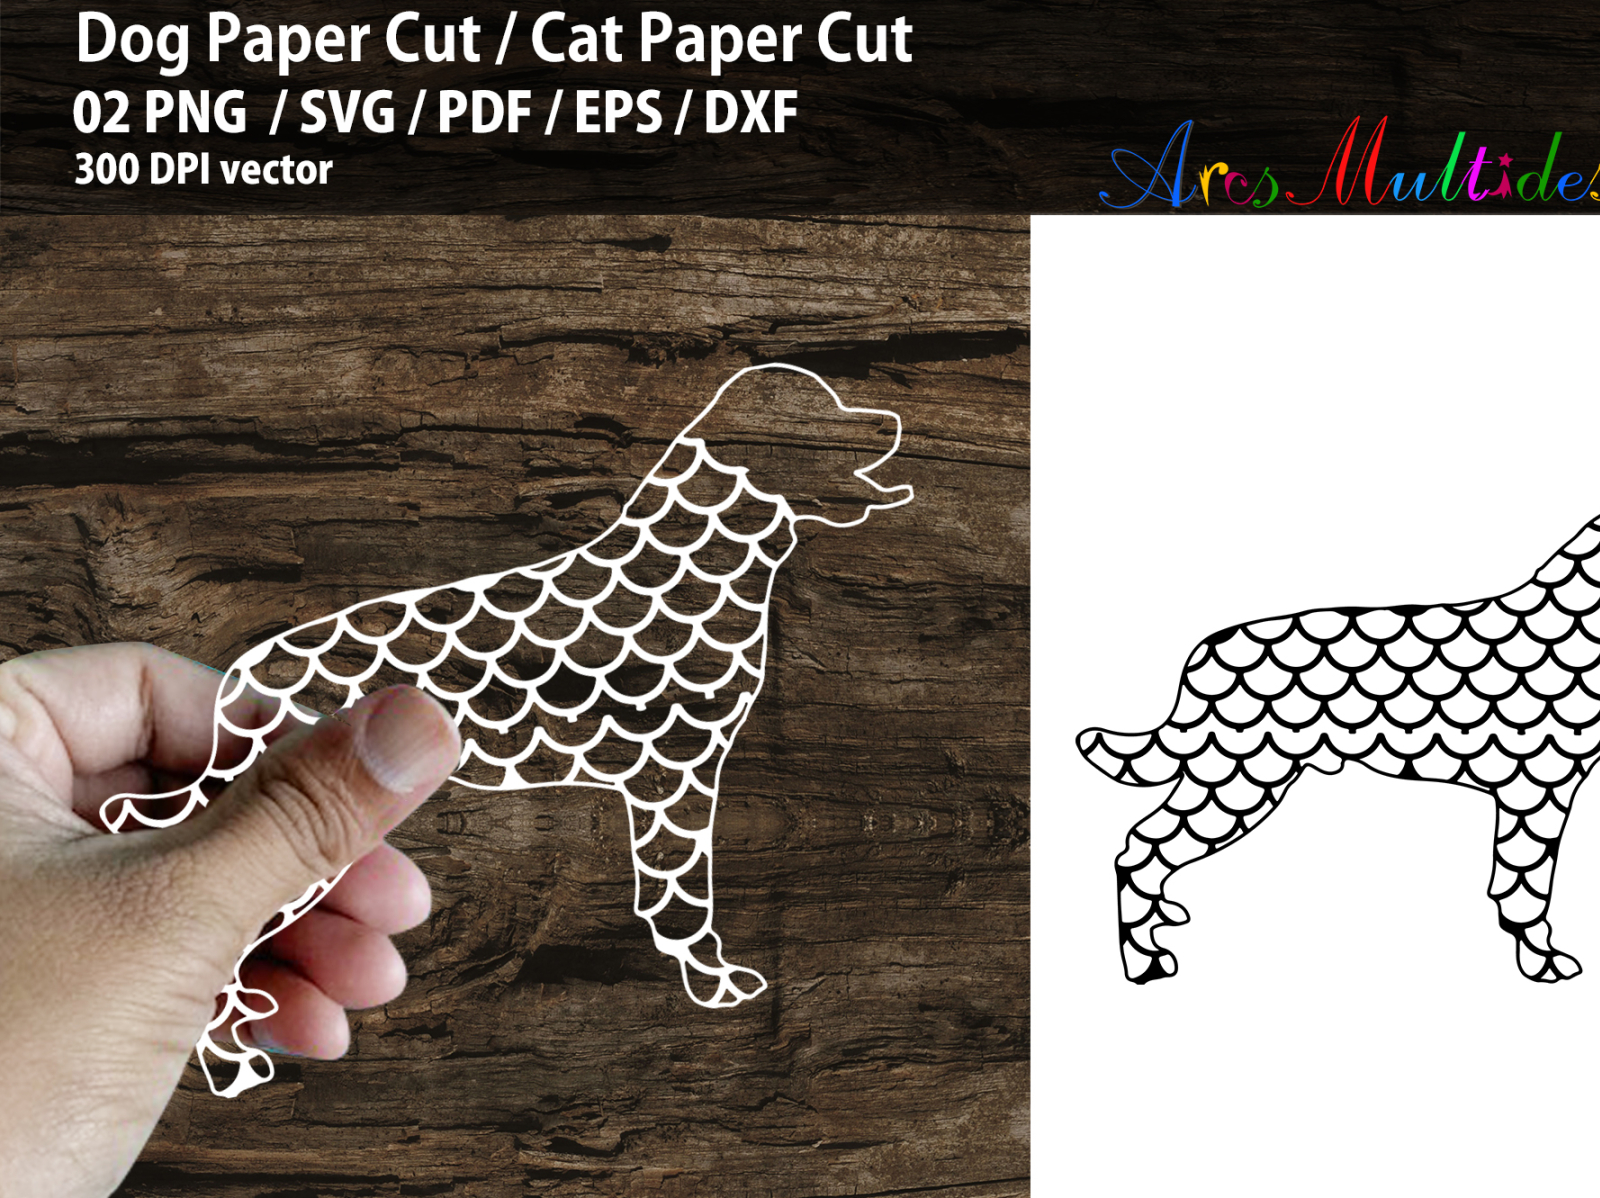 Dog Paper Cut Cat Paper Cut By Arcs Multidesigns On Dribbble